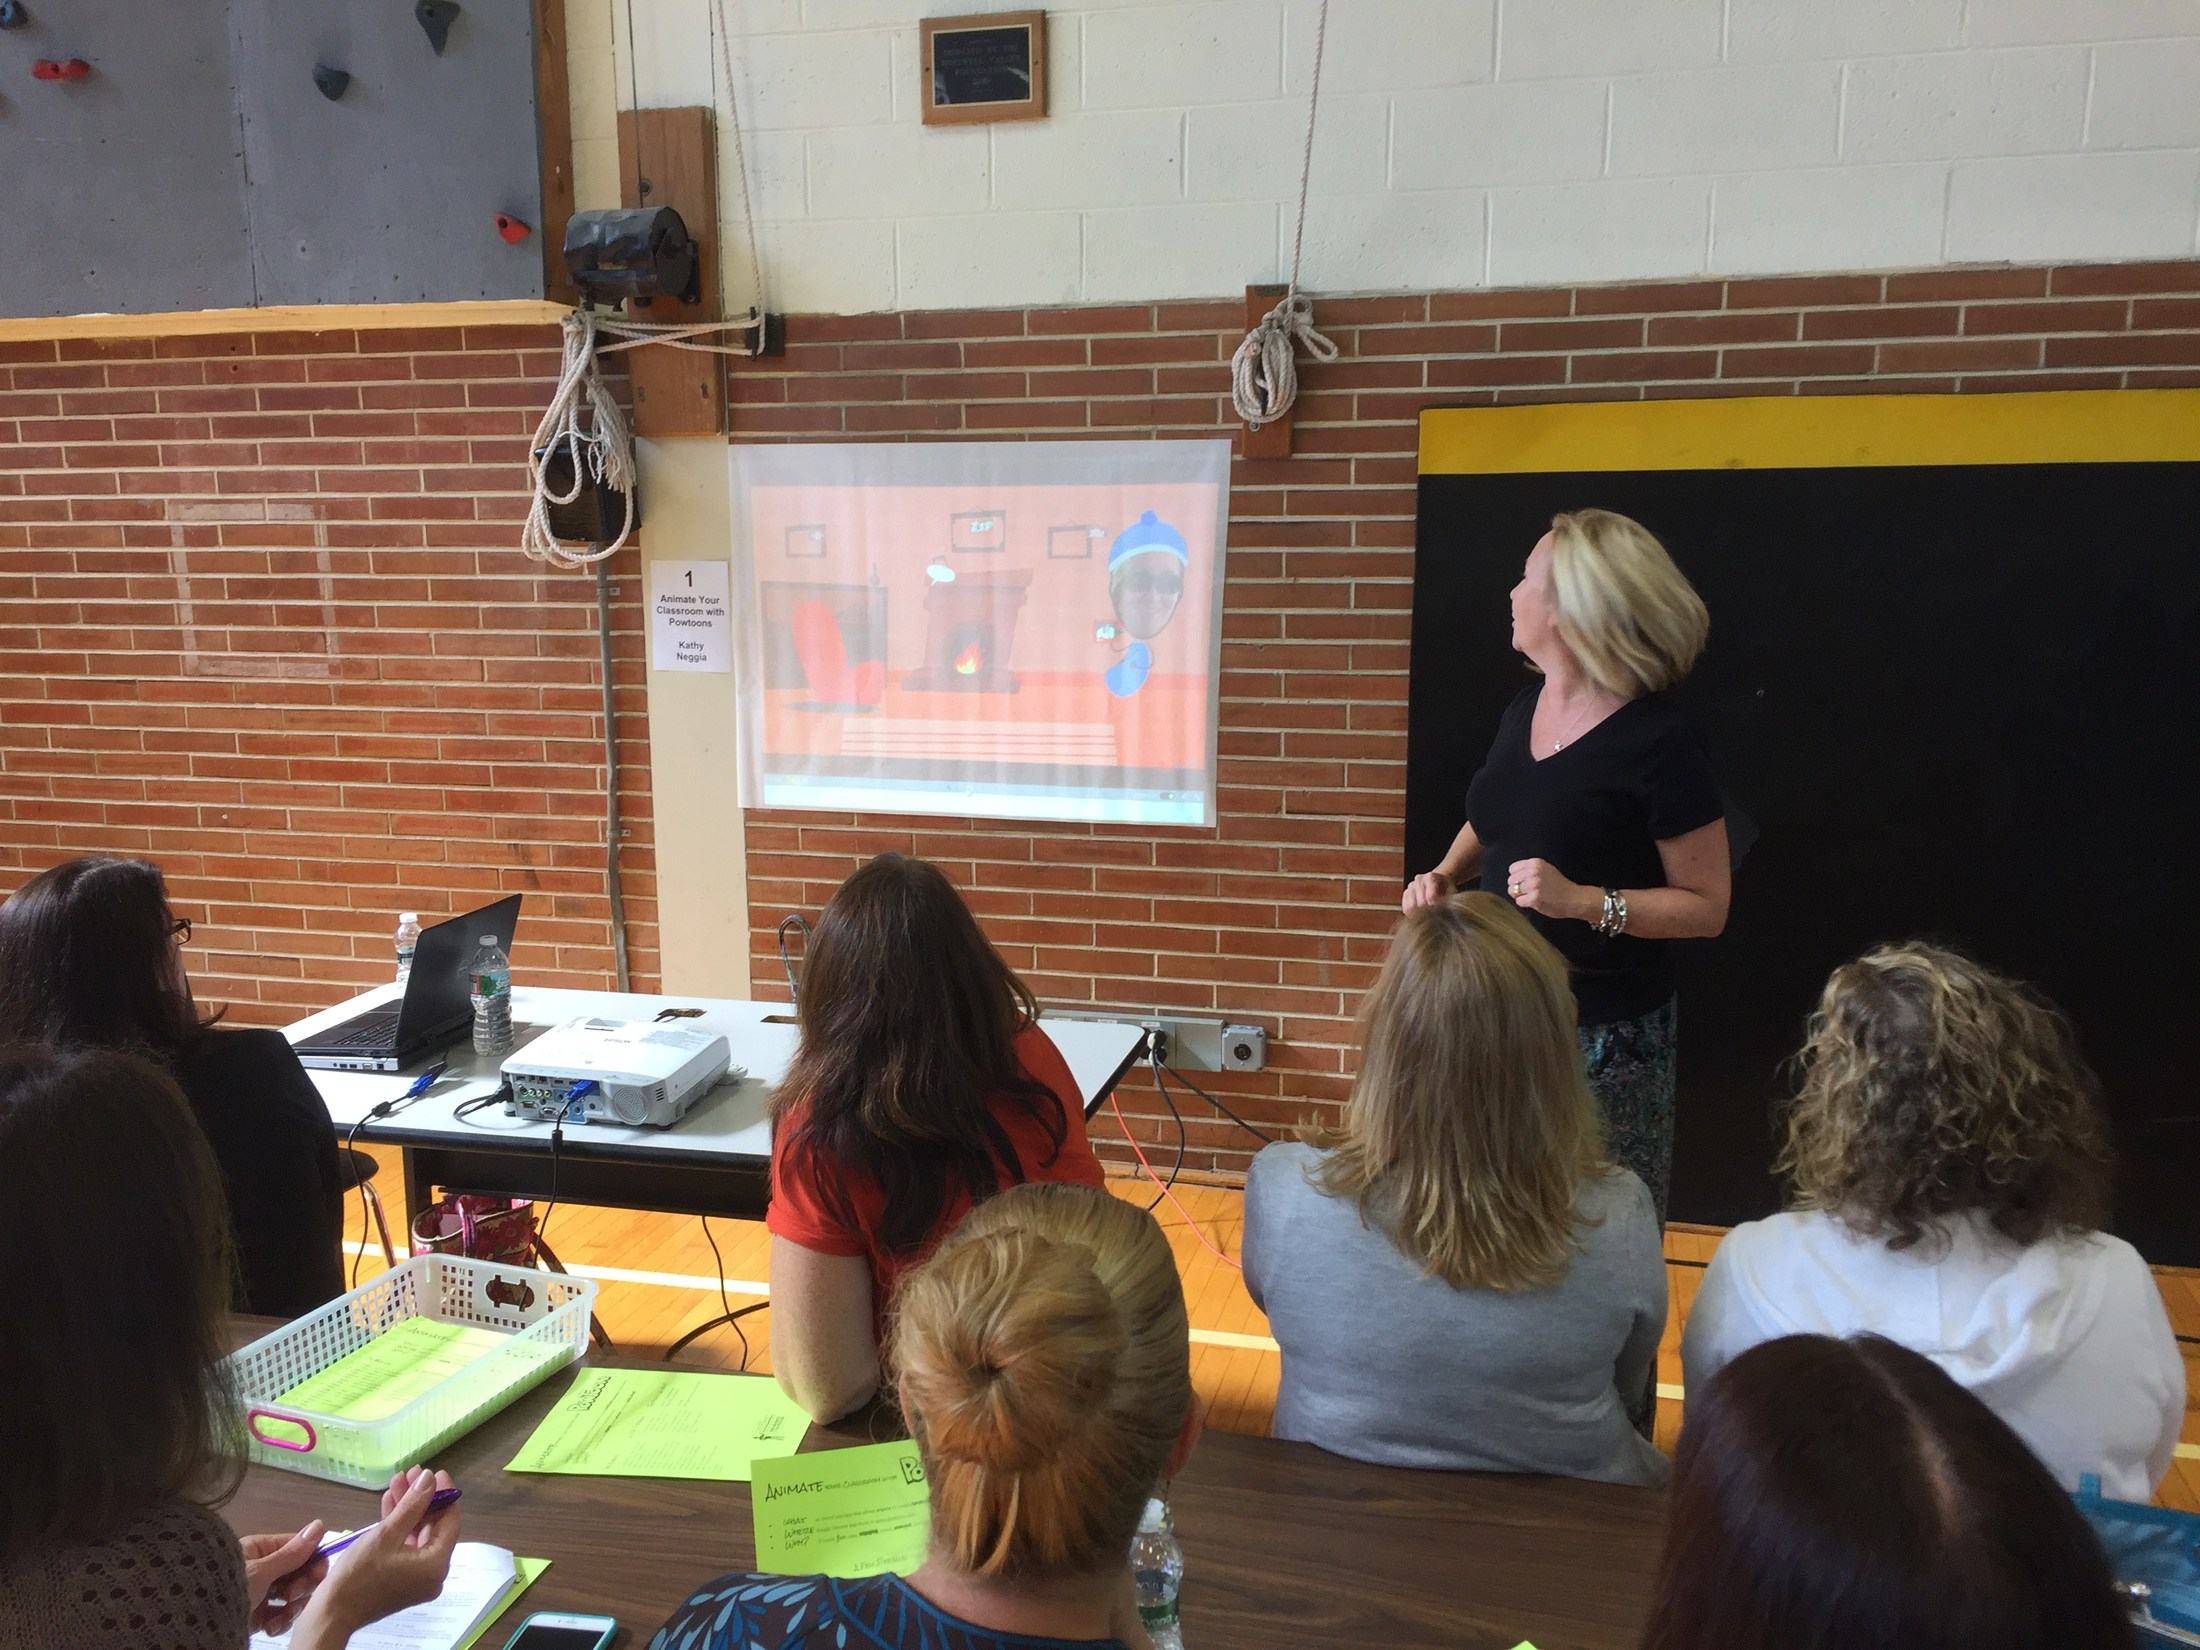 Timberlane Middle School teacher Kathy Neggia demonstrates how technology can enhance classroom instruction to a group of teachers